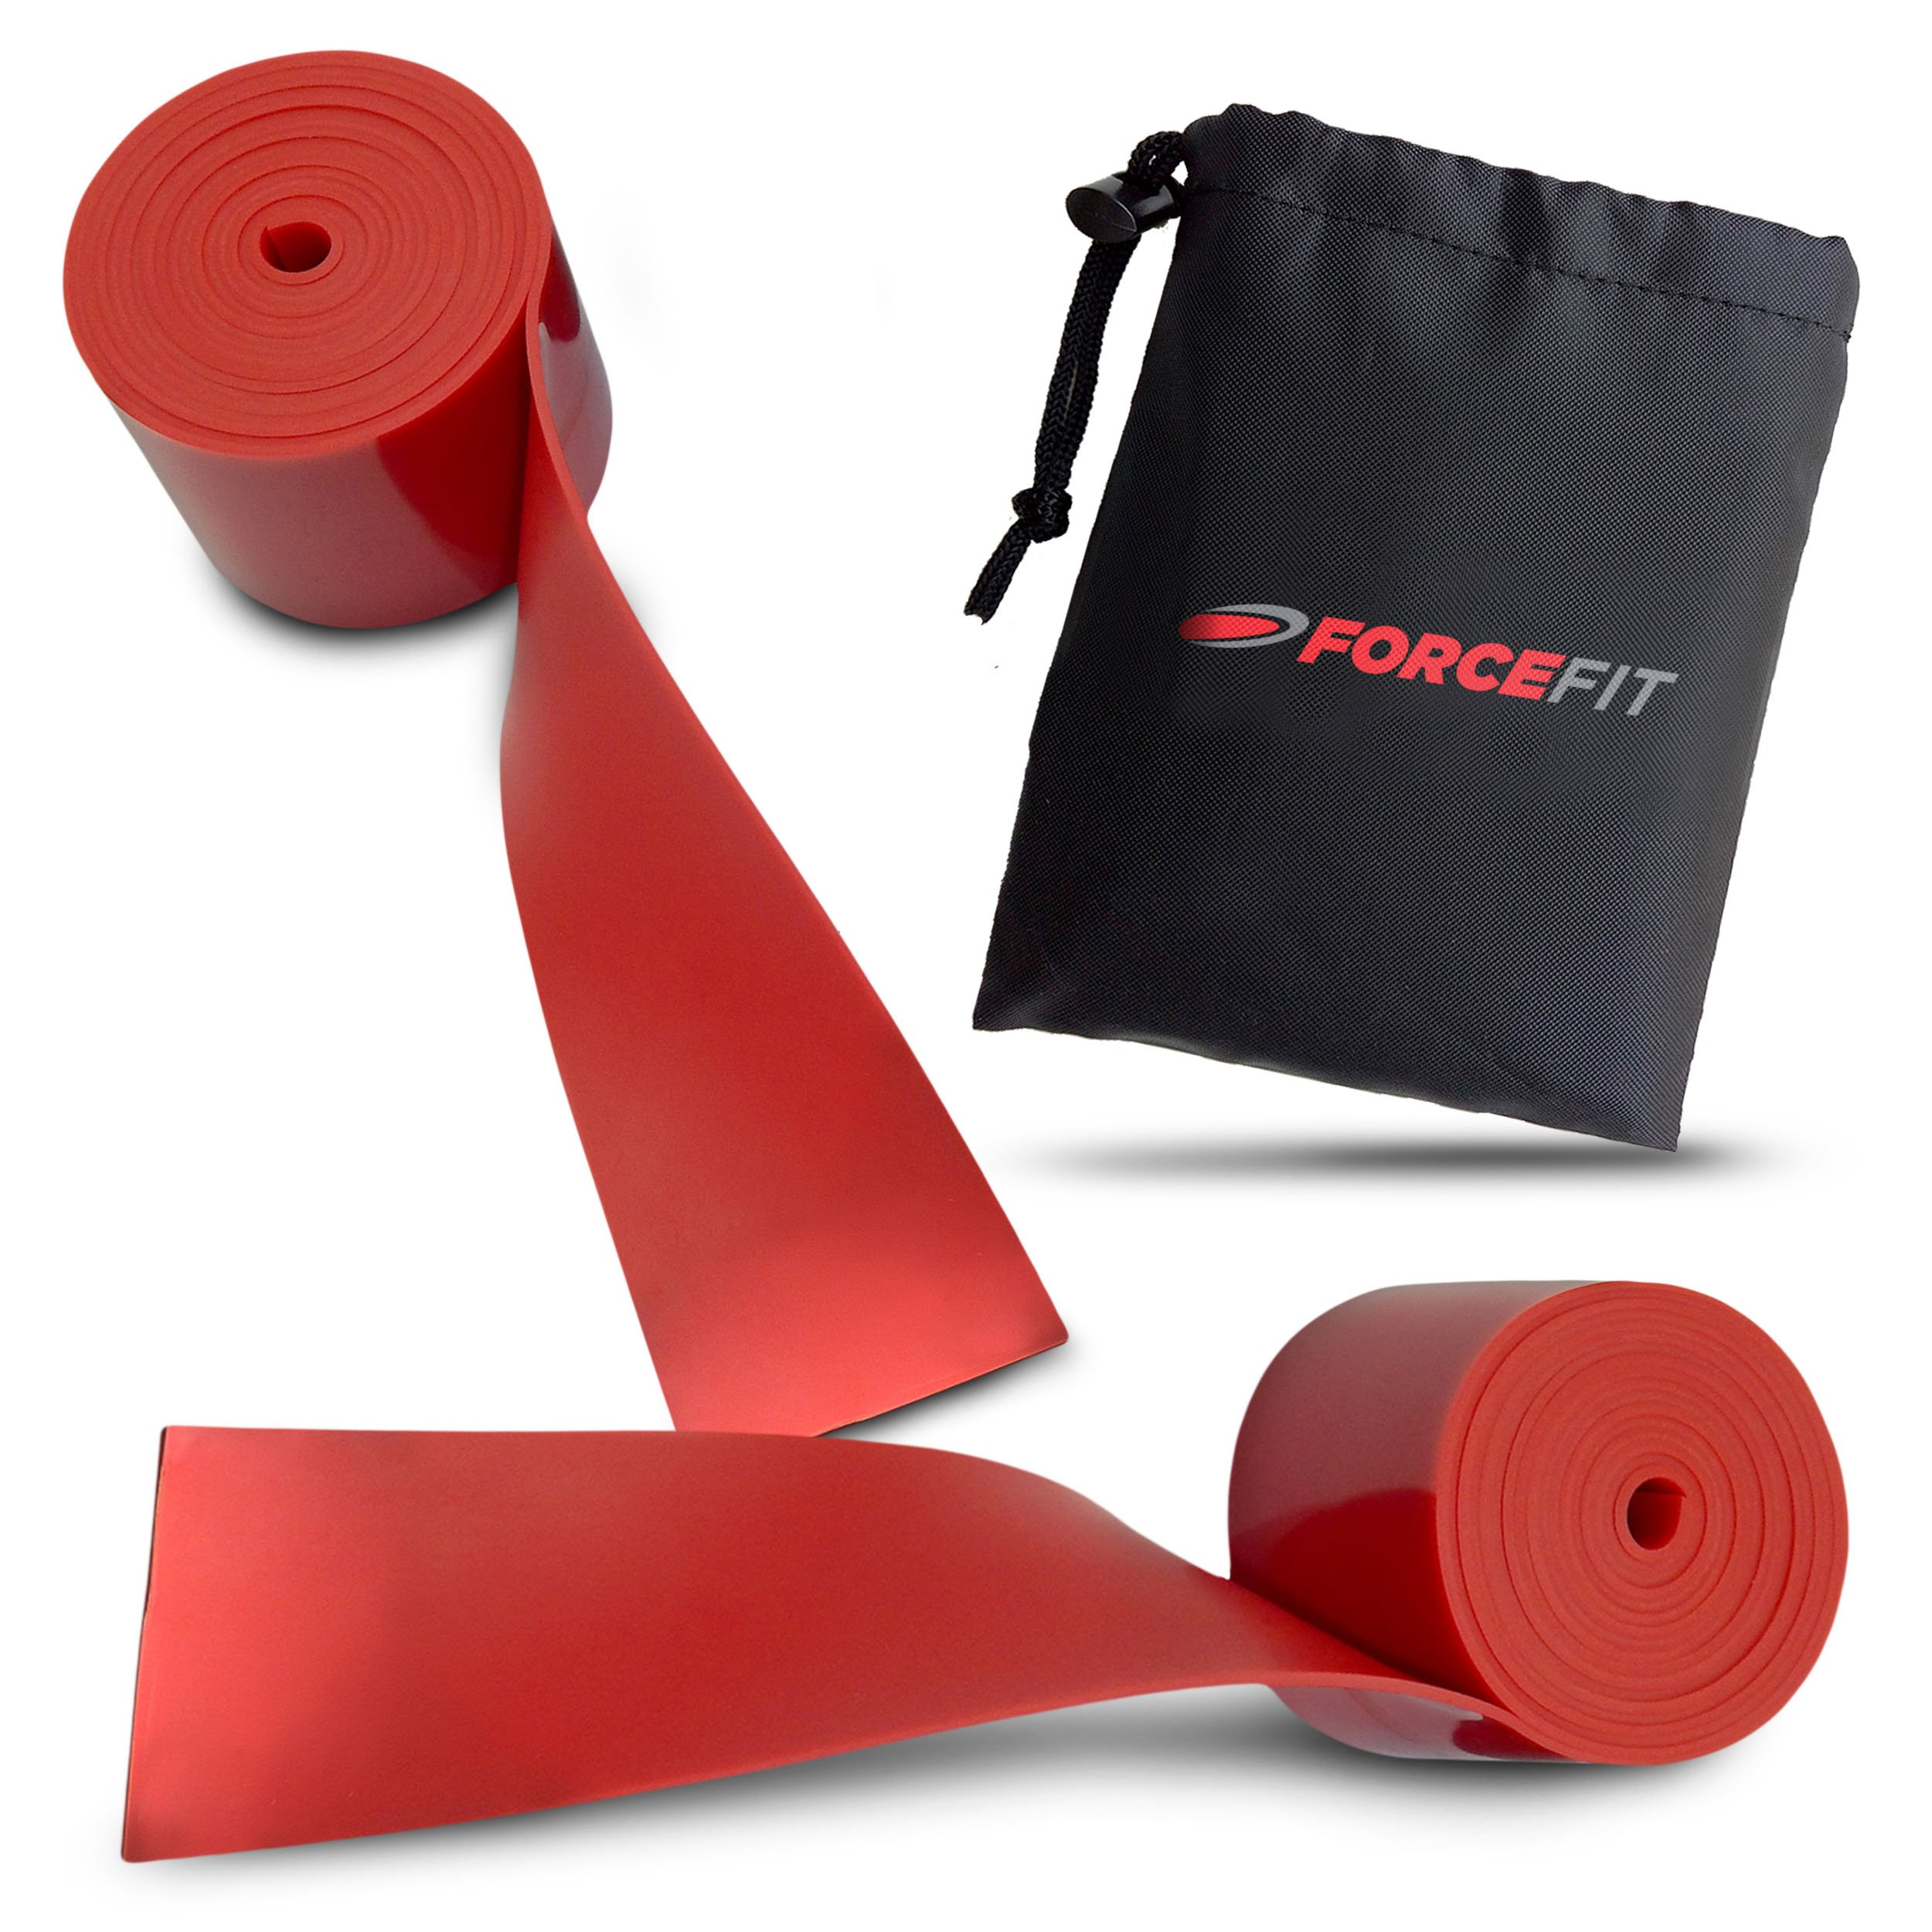 ForceFit Floss Bands for Joint and Muscle Recovery - 1 Red & 1 Red (2 Red Bands)